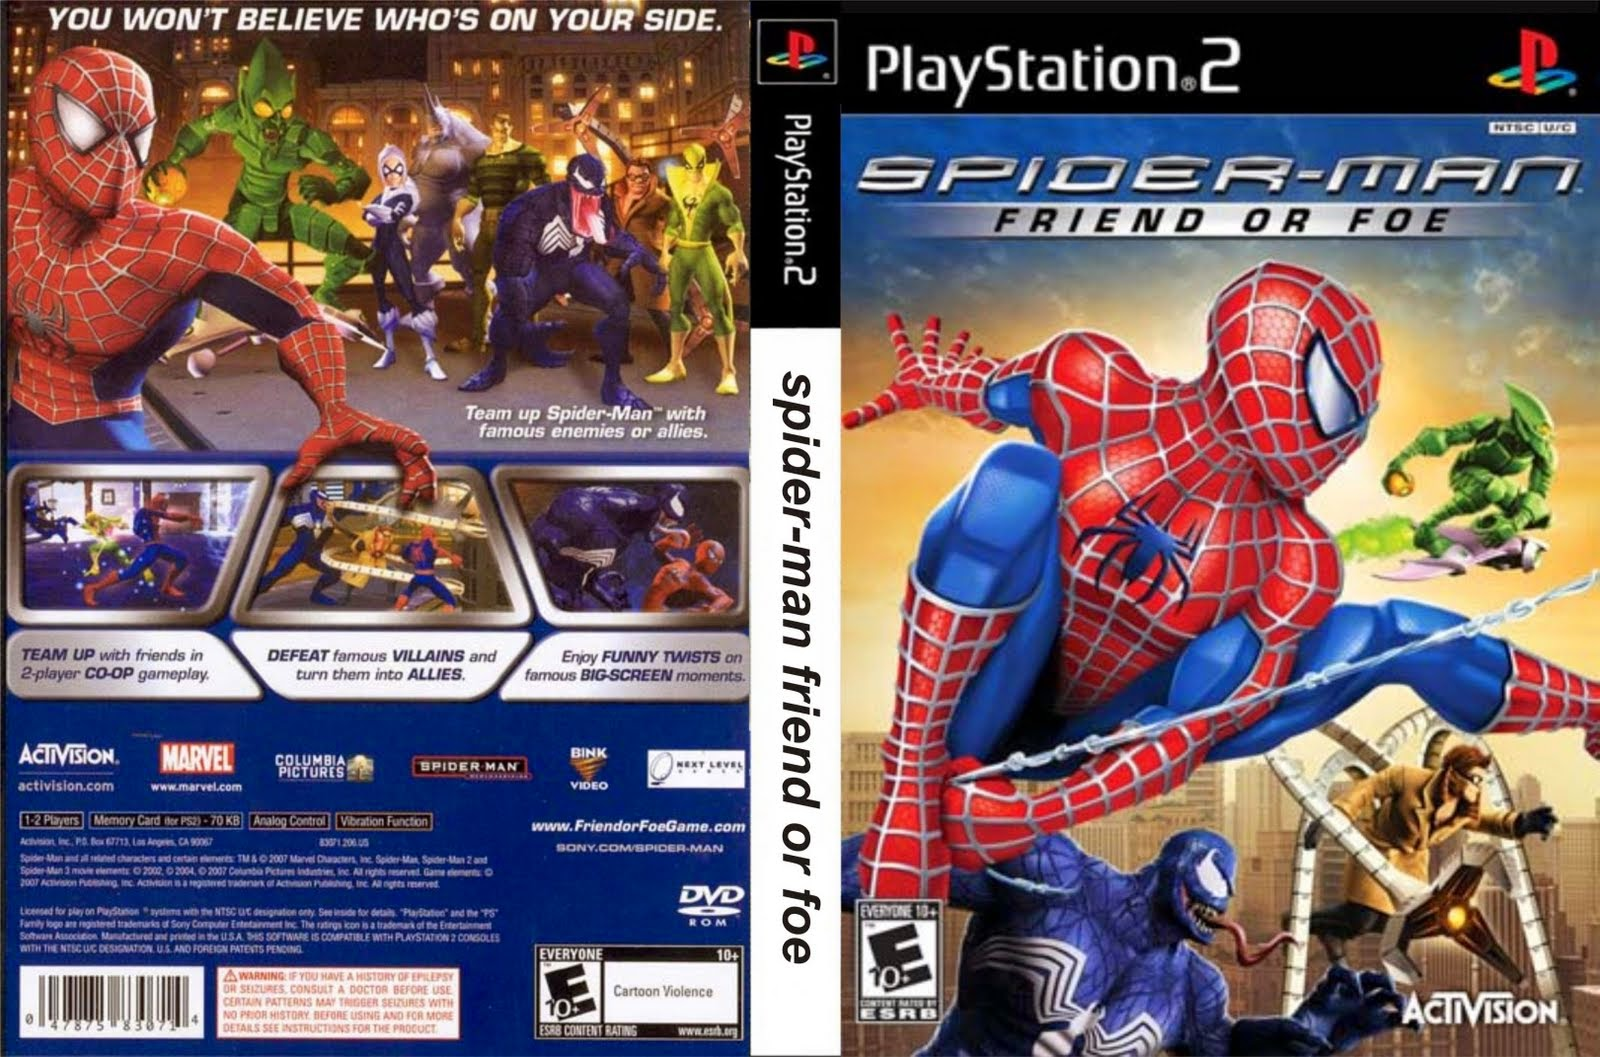 SPIDER-MAN: FRIEND OR FOE PS2